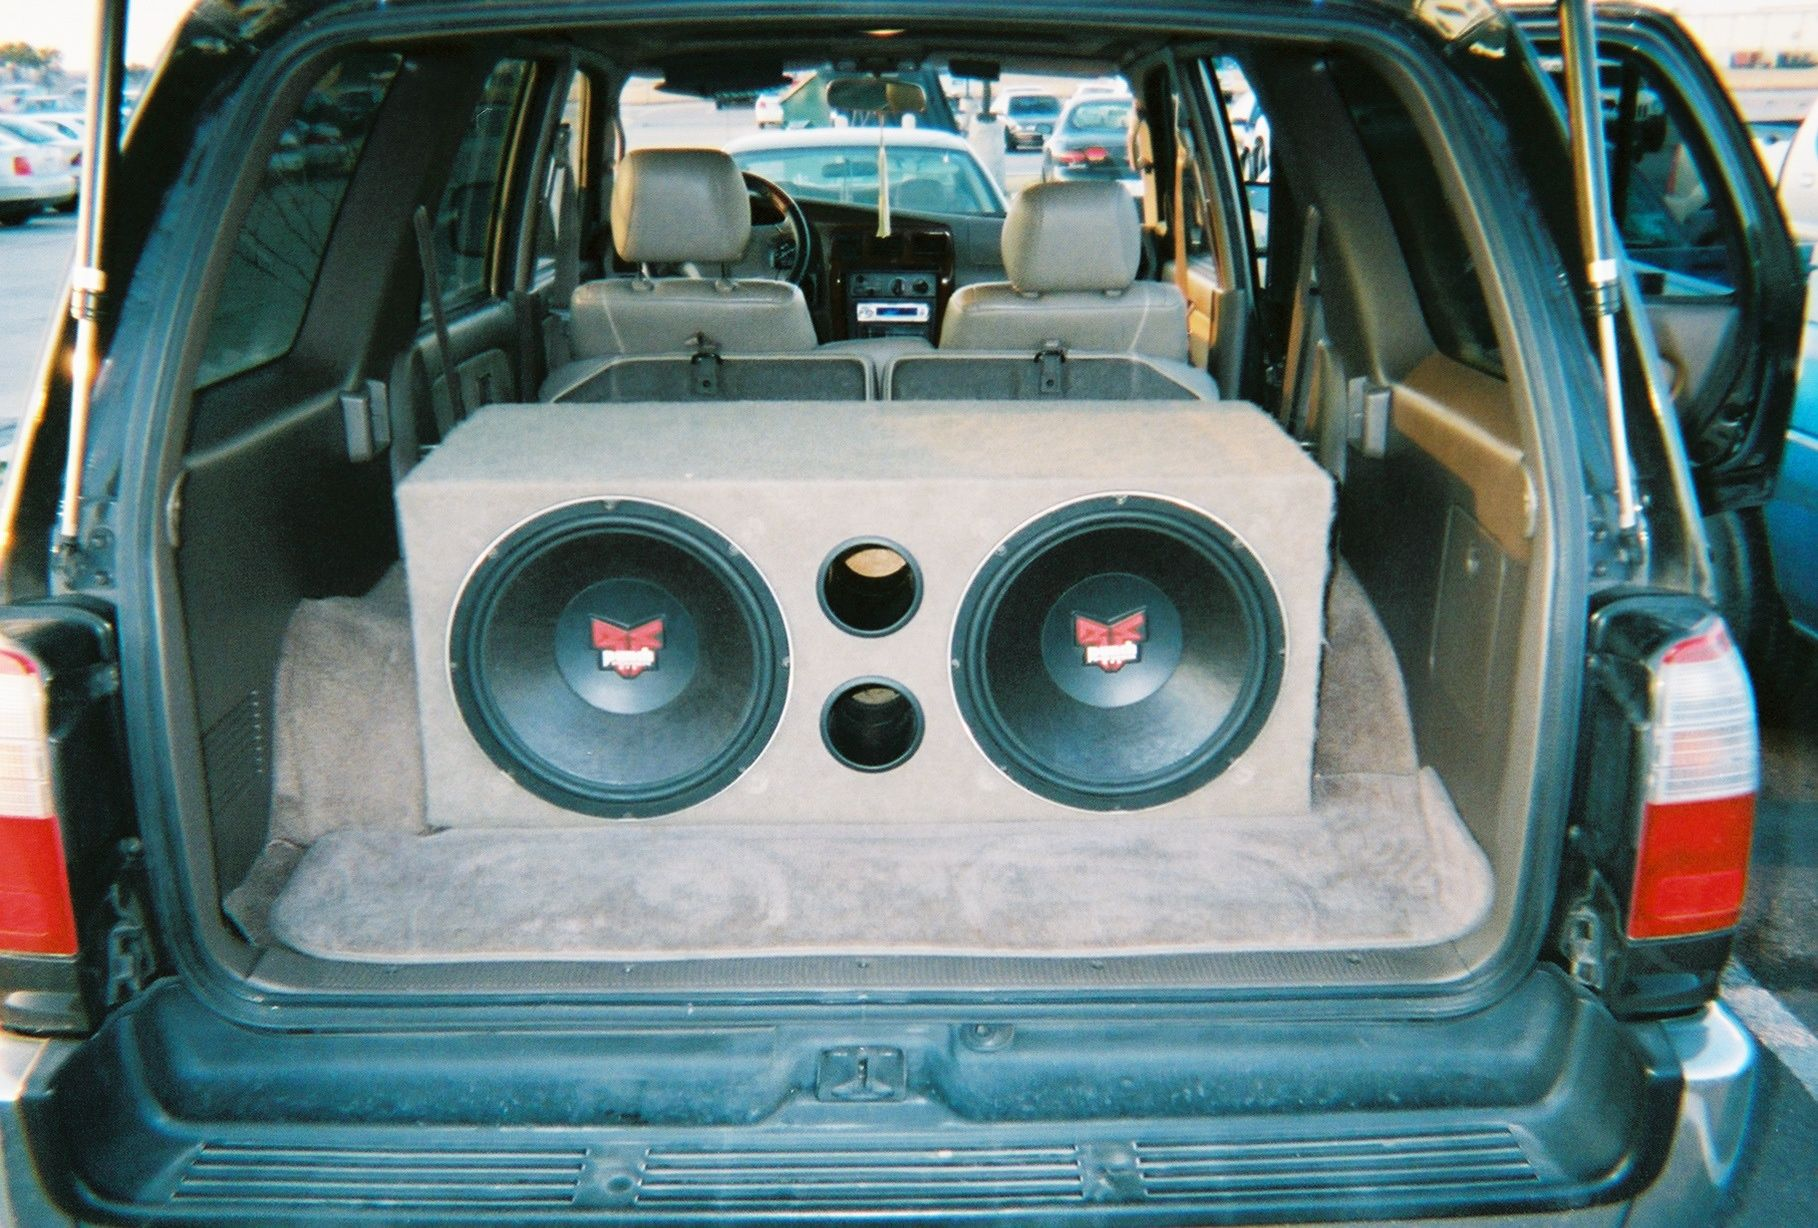 Rockford Fosgate Component Speakers